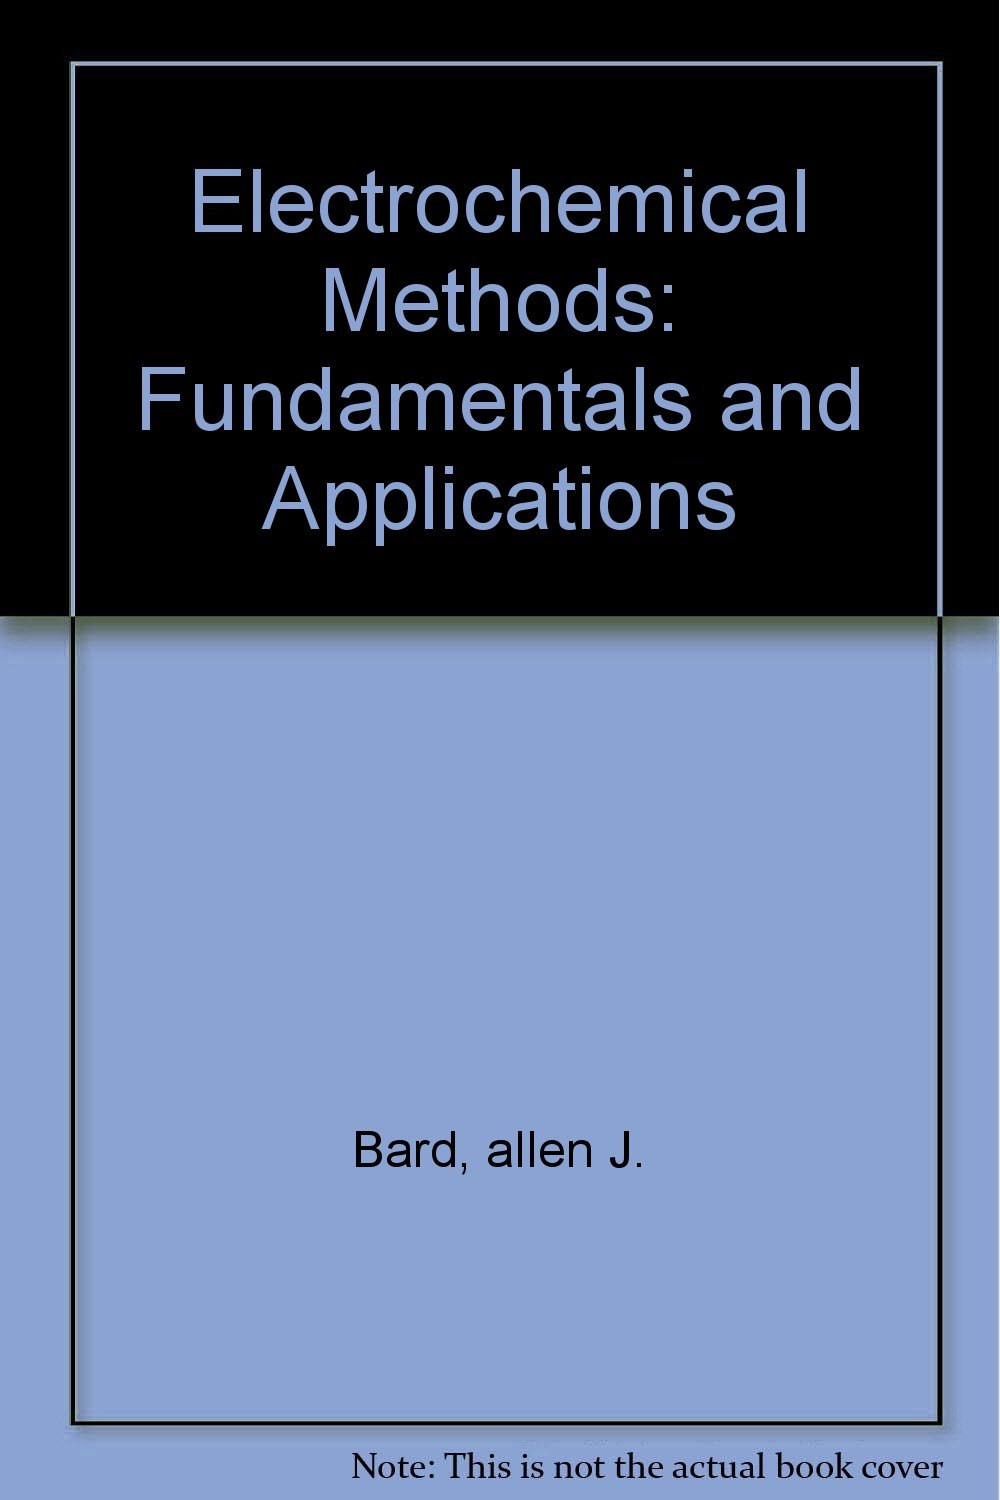 Electrochemical Methods: Fundamentals and Applications: allen J. Bard:  Amazon.com: Books